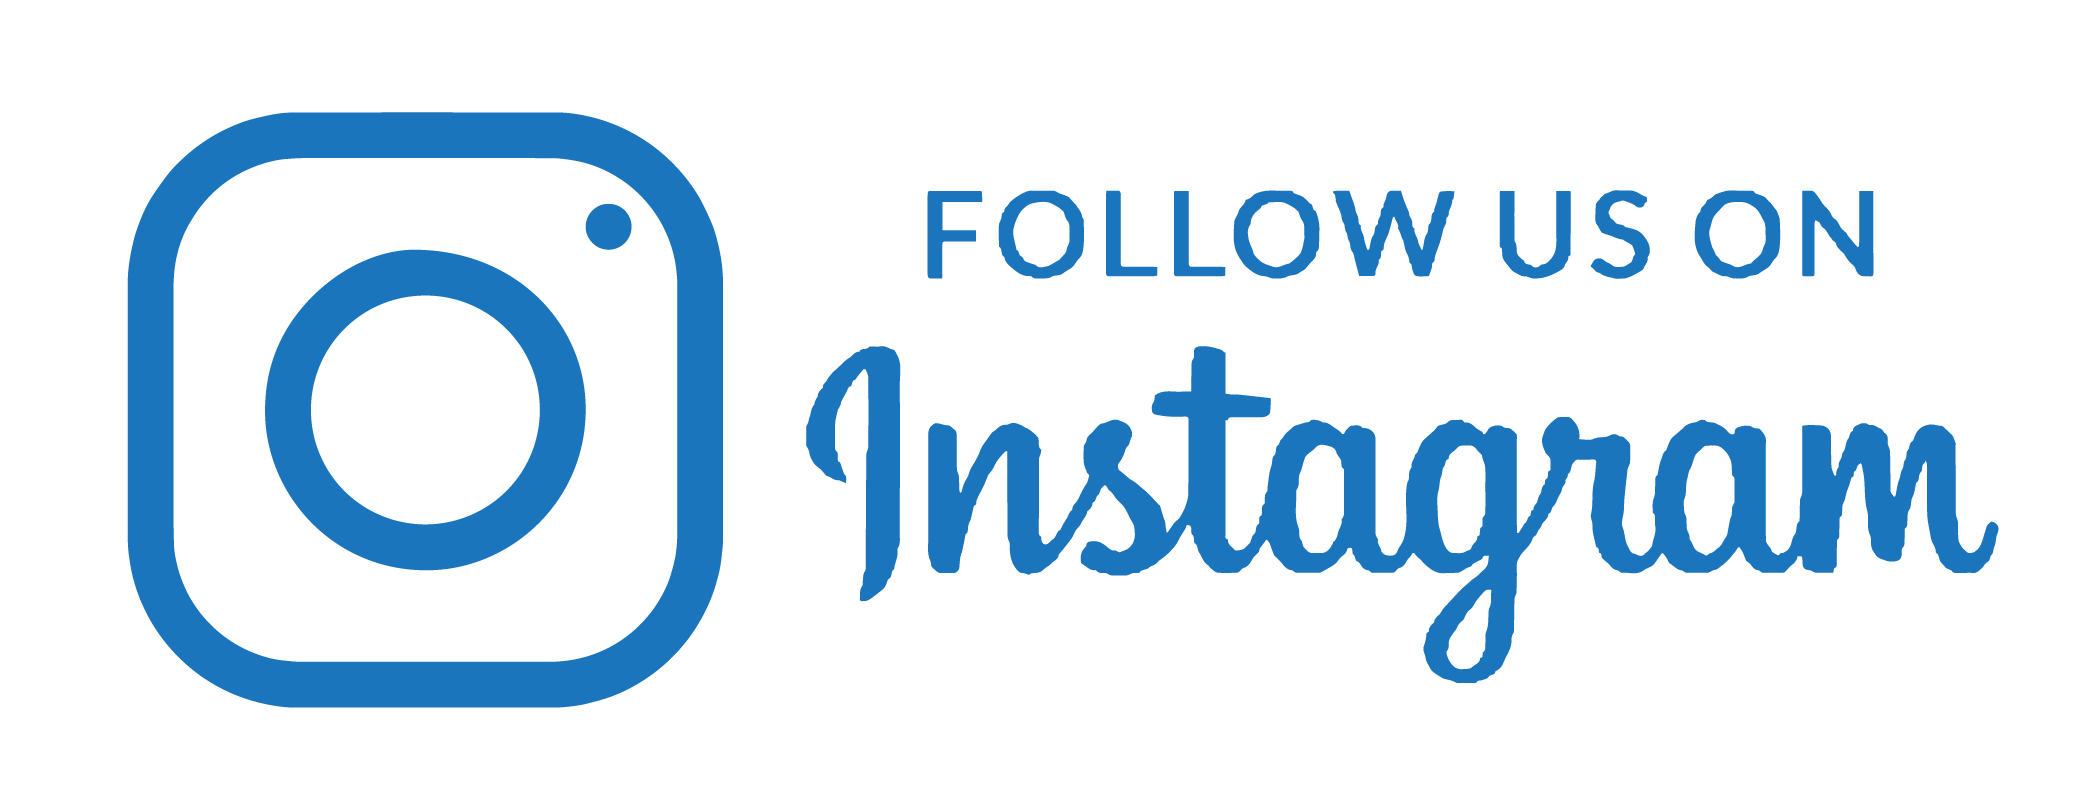 follow-us-instagram.png